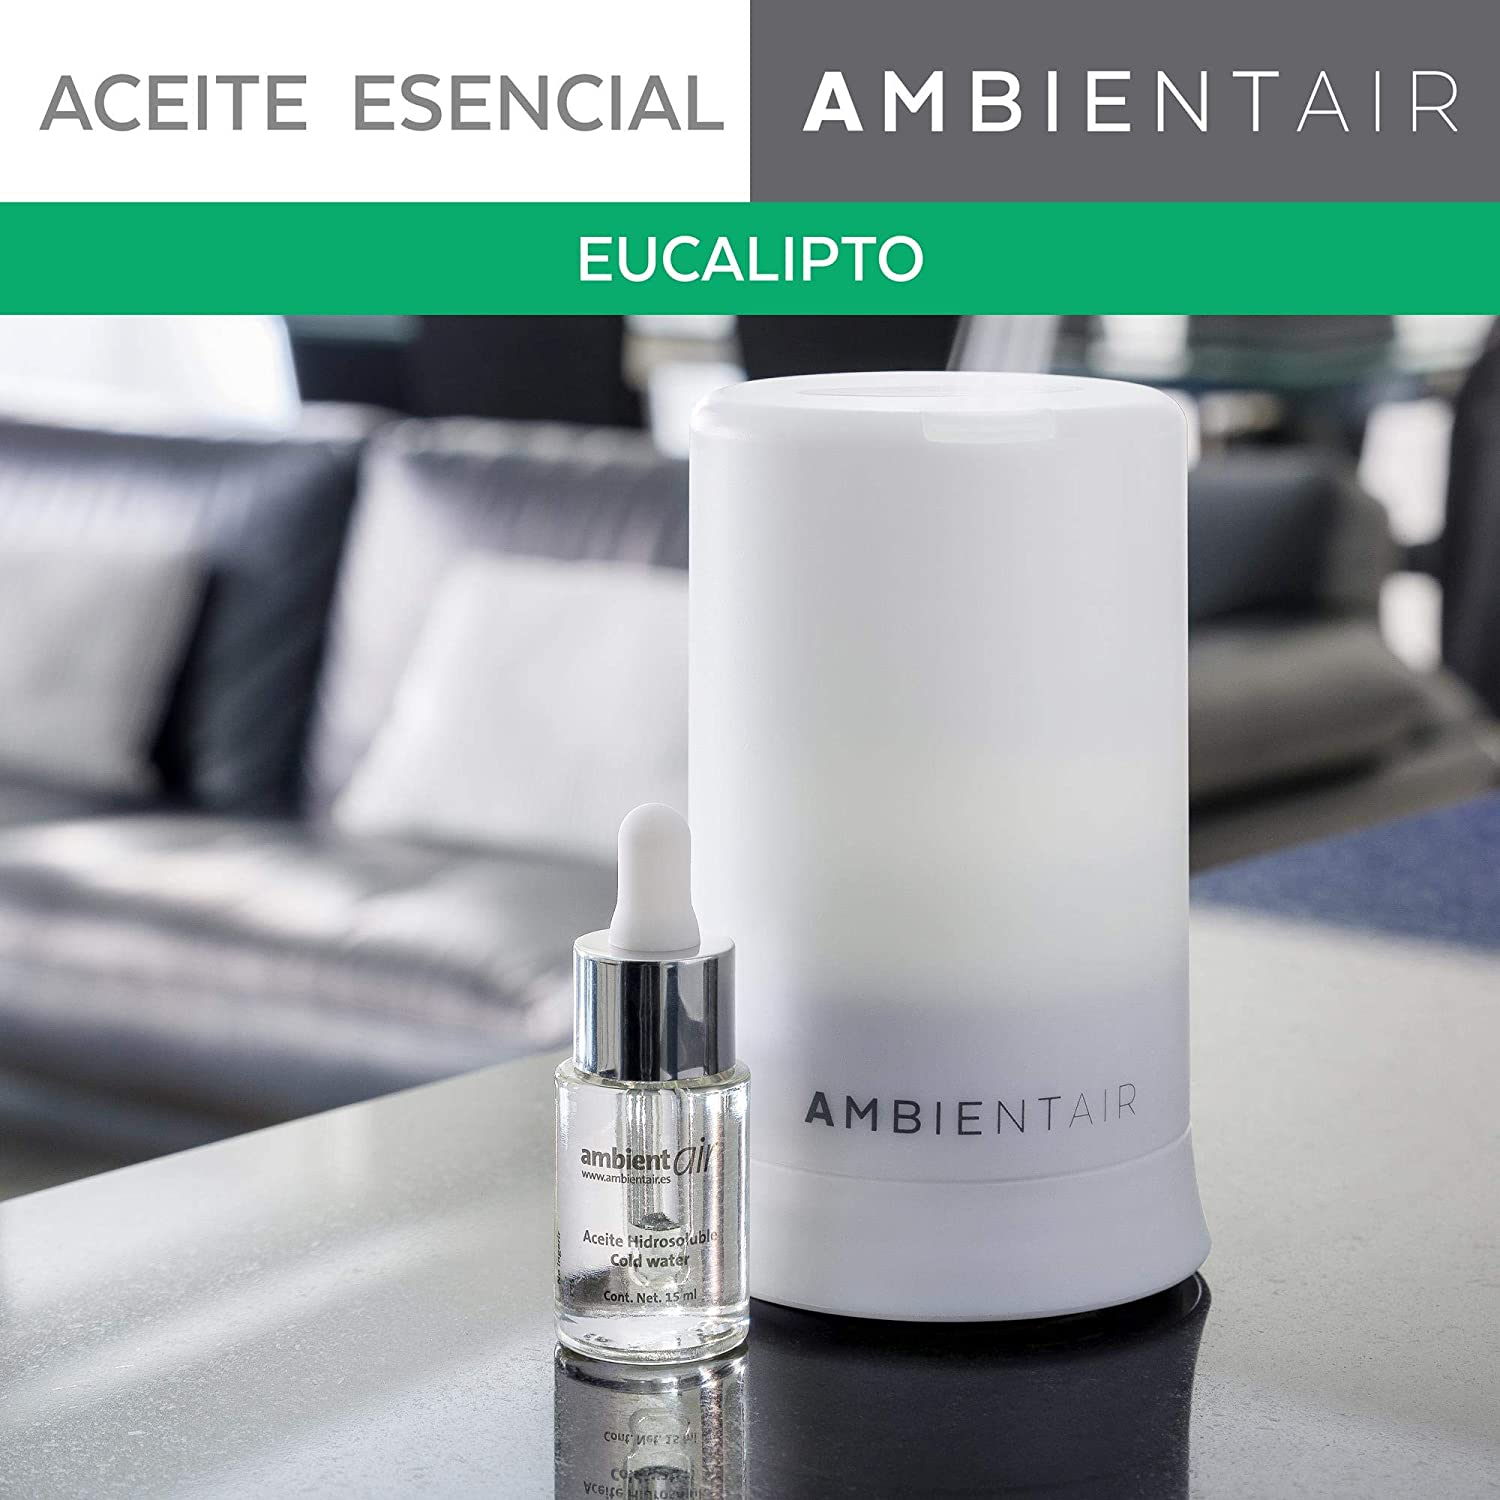 Ambientair. Aceite perfumado hidrosoluble 15ml. Aceite ...